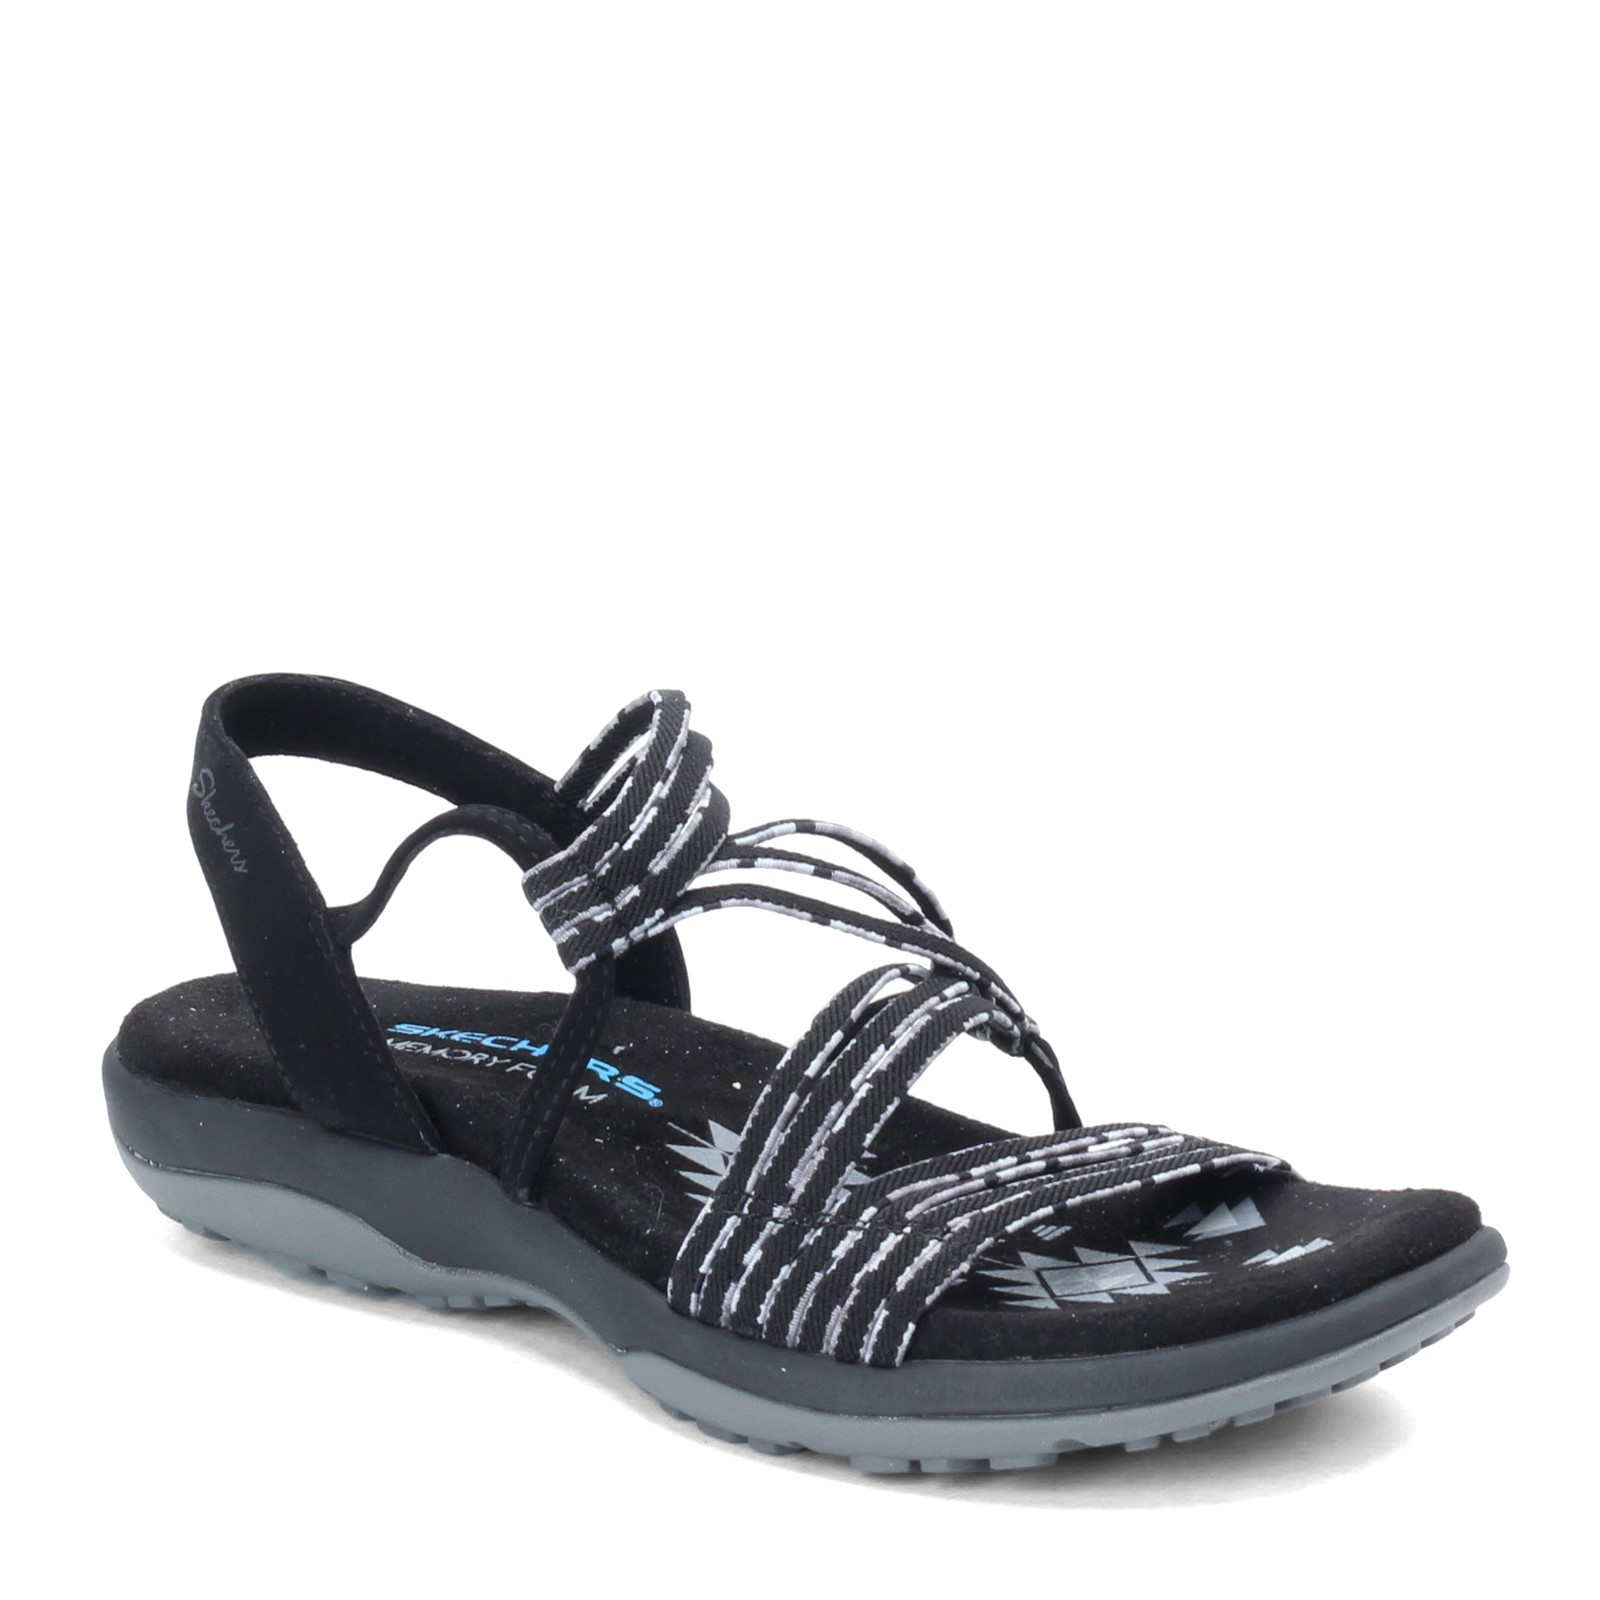 842709224a441 Home; Women's Skechers, Reggae Slim Stretch Appeal Sandals. Previous.  default view ...